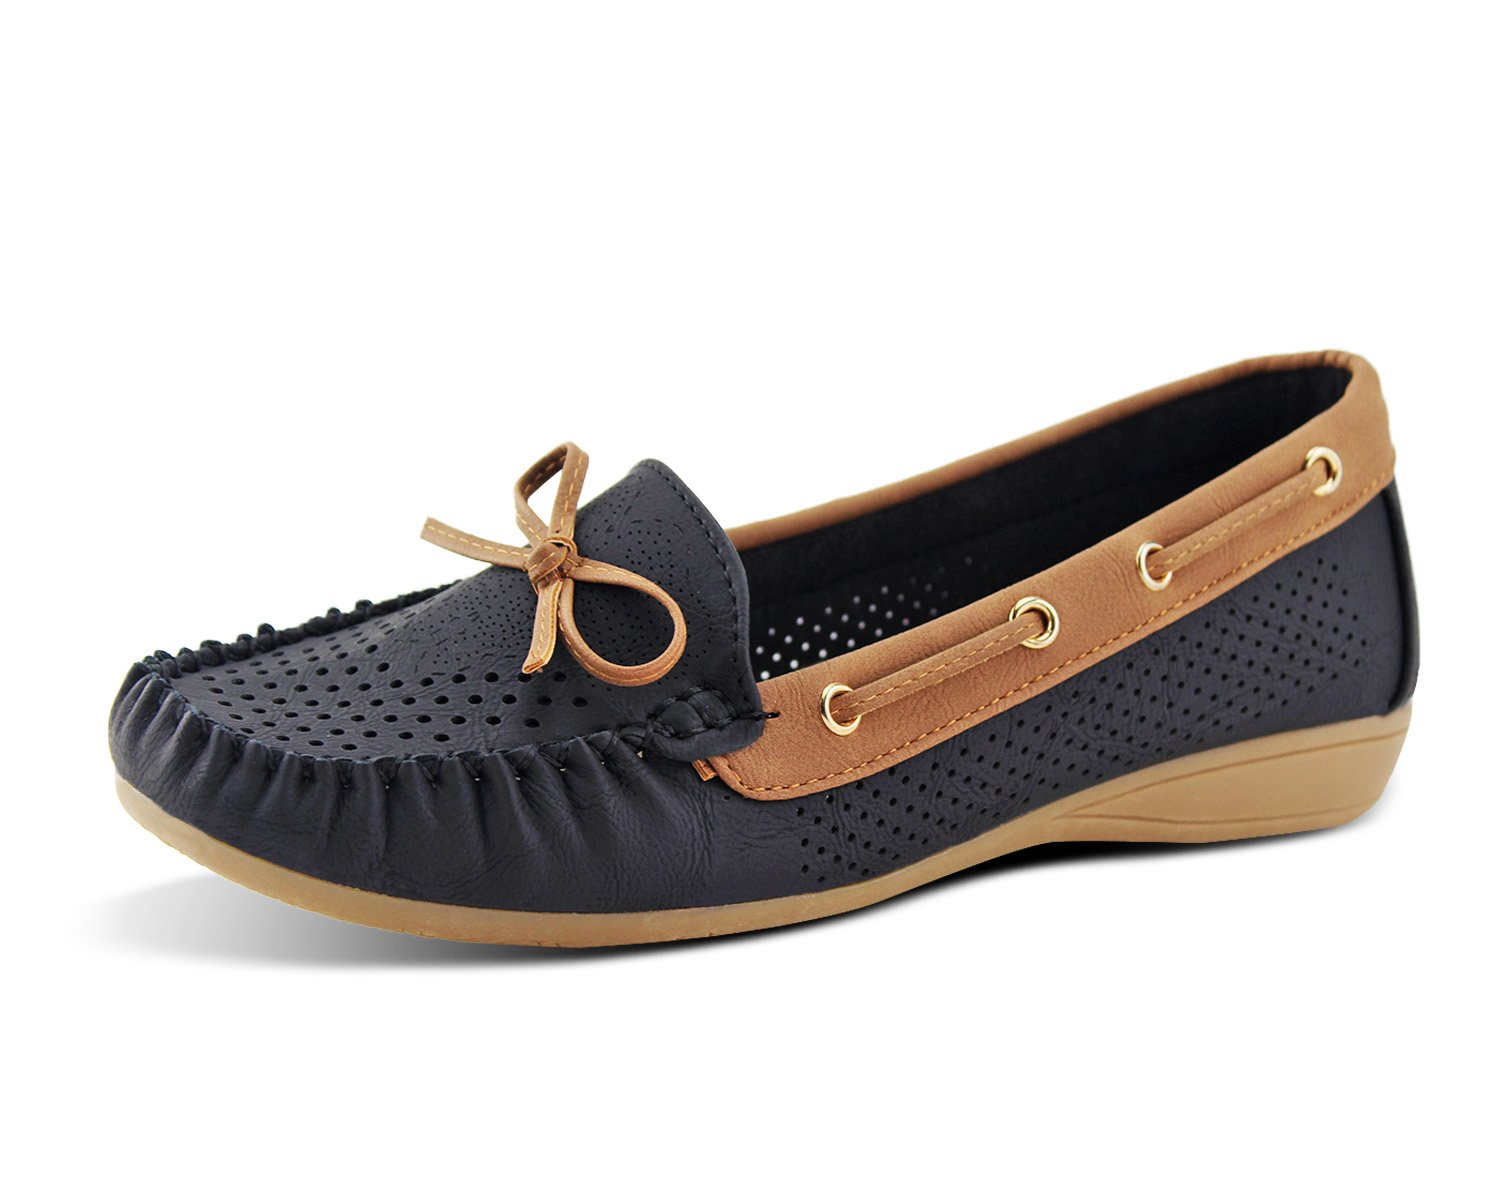 Jabasic Lady Comfort Slip-on Loafers Hollow Driving Flat Shoes(7,Black-1)